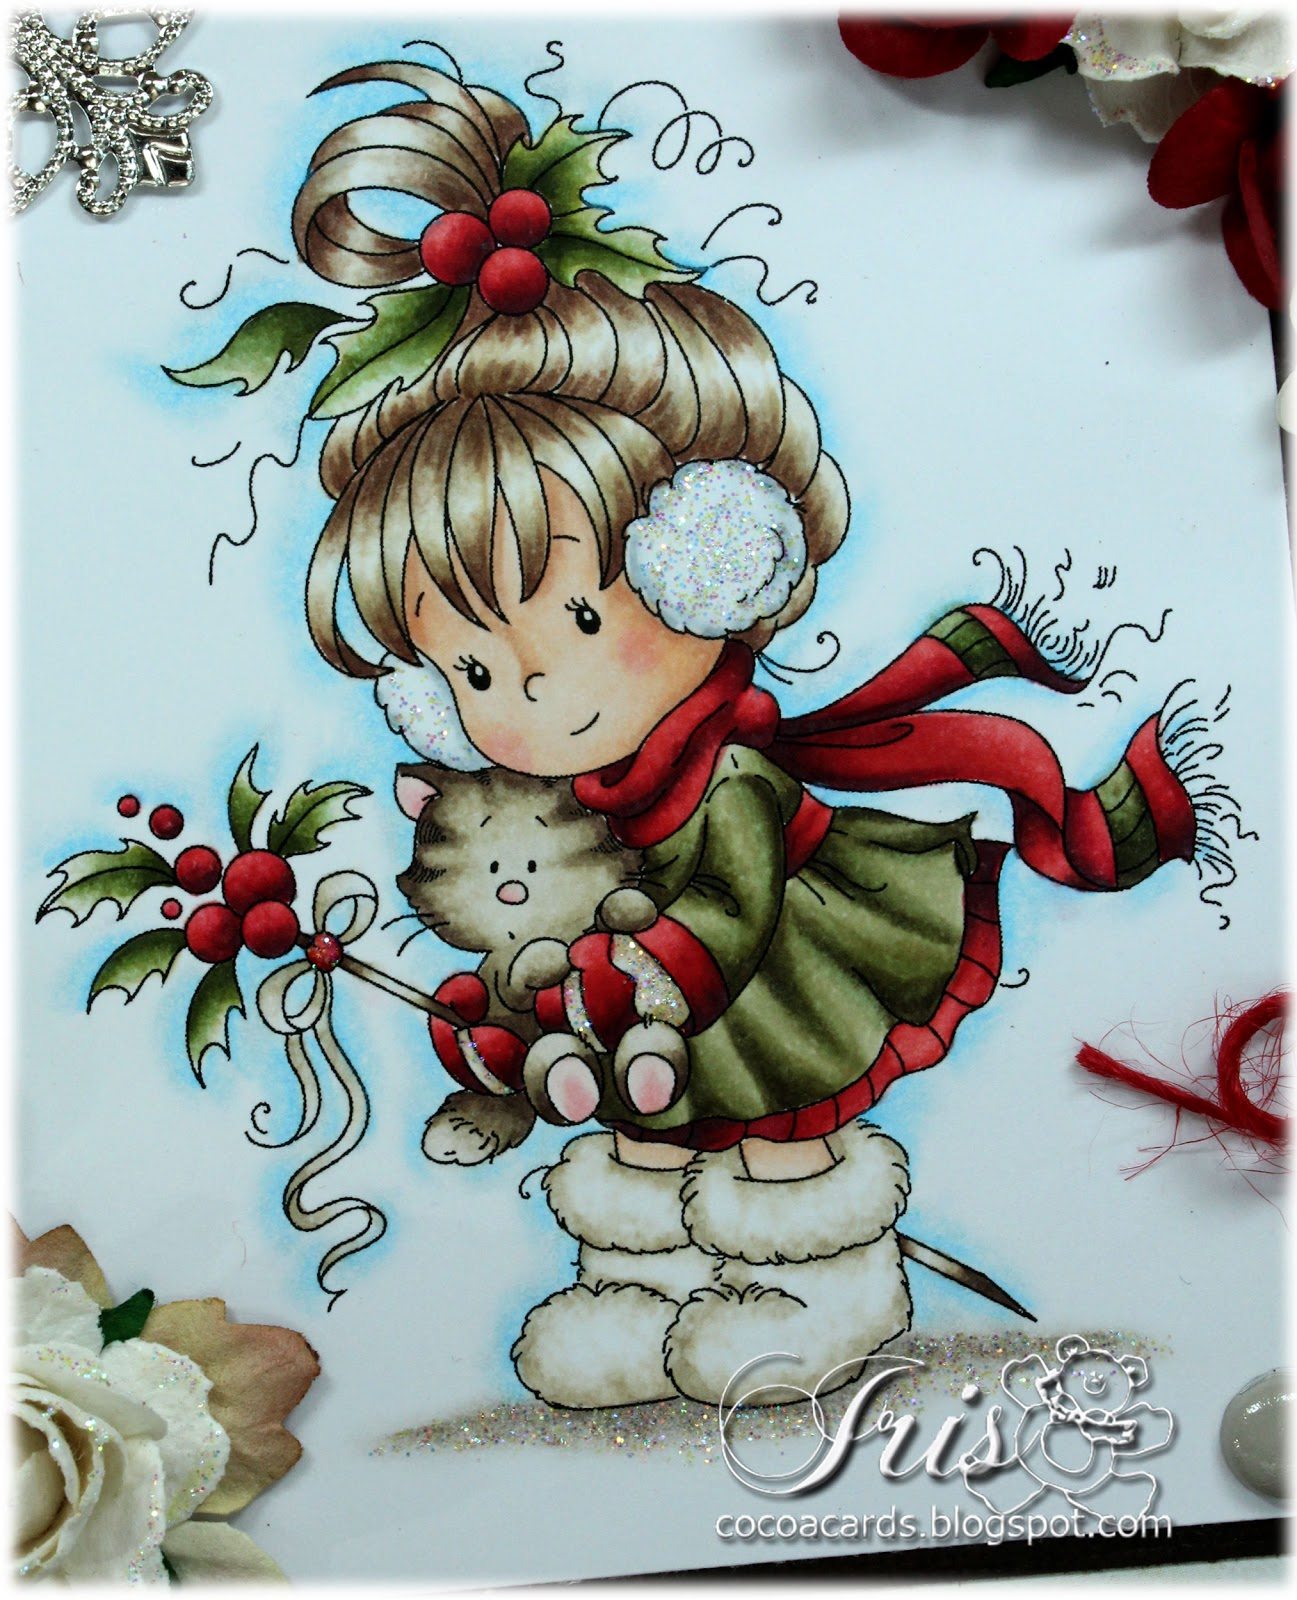 Paper Crafting In Cocoa Whimsy Stamps November Rubber